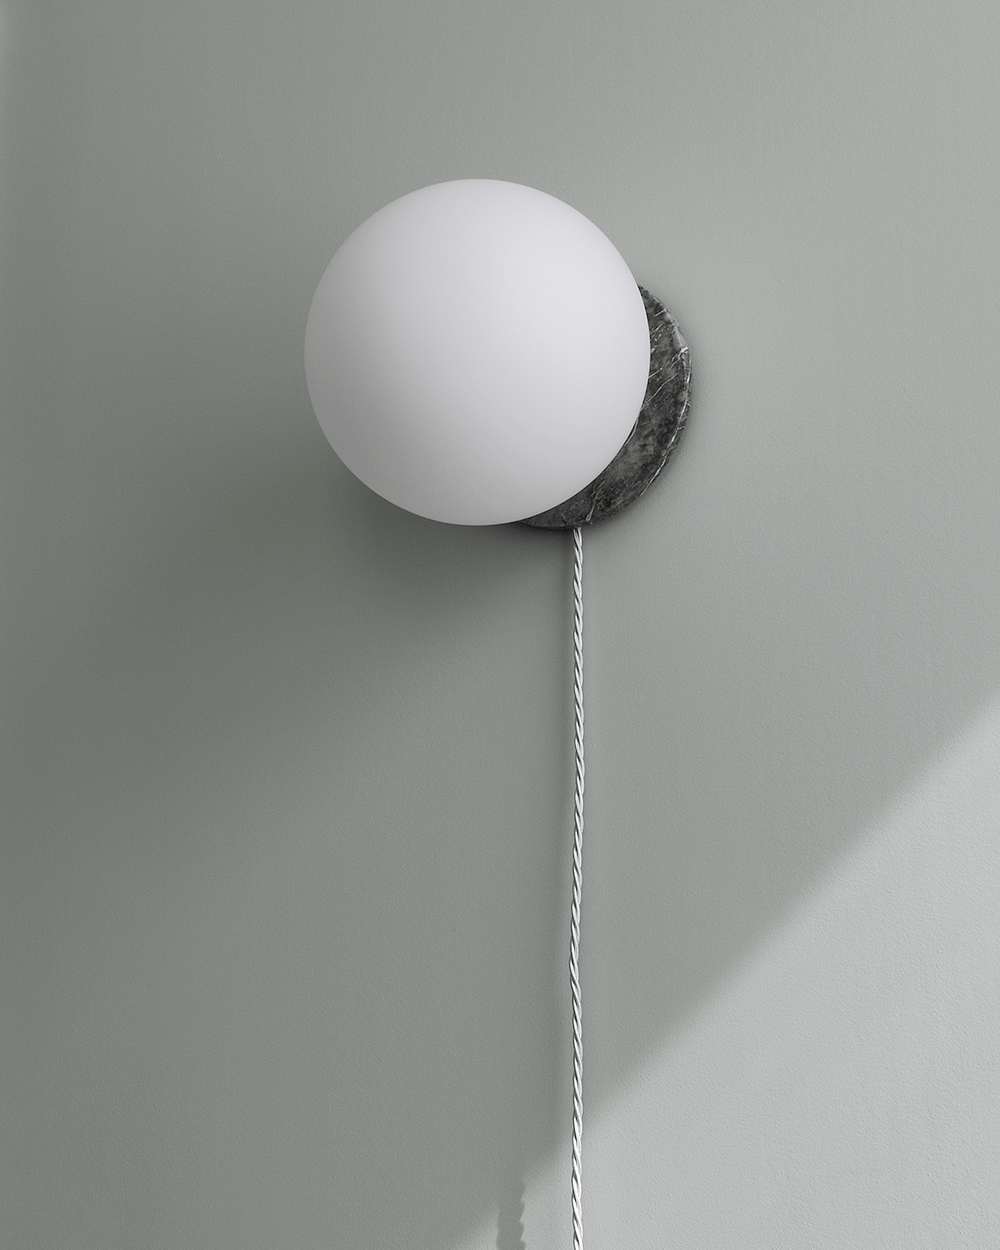 White globe wall light, grey marble base, fabric cord, grey wall